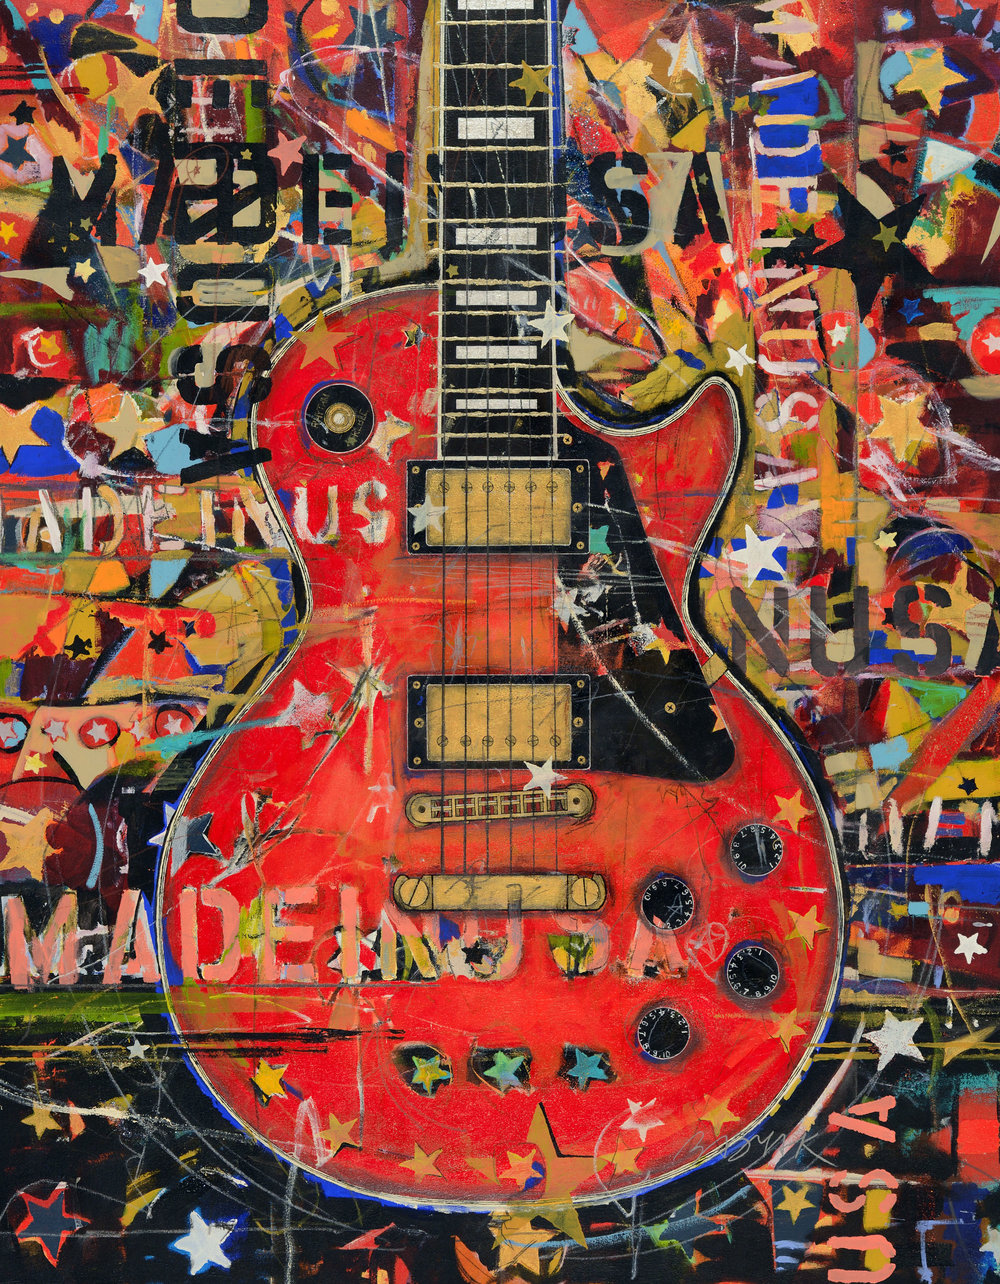 Red Les Paul • 54 X 42 • Acrylic, graphite, glitter, 24K gold leaf, silver leaf, polymer netting on canvas